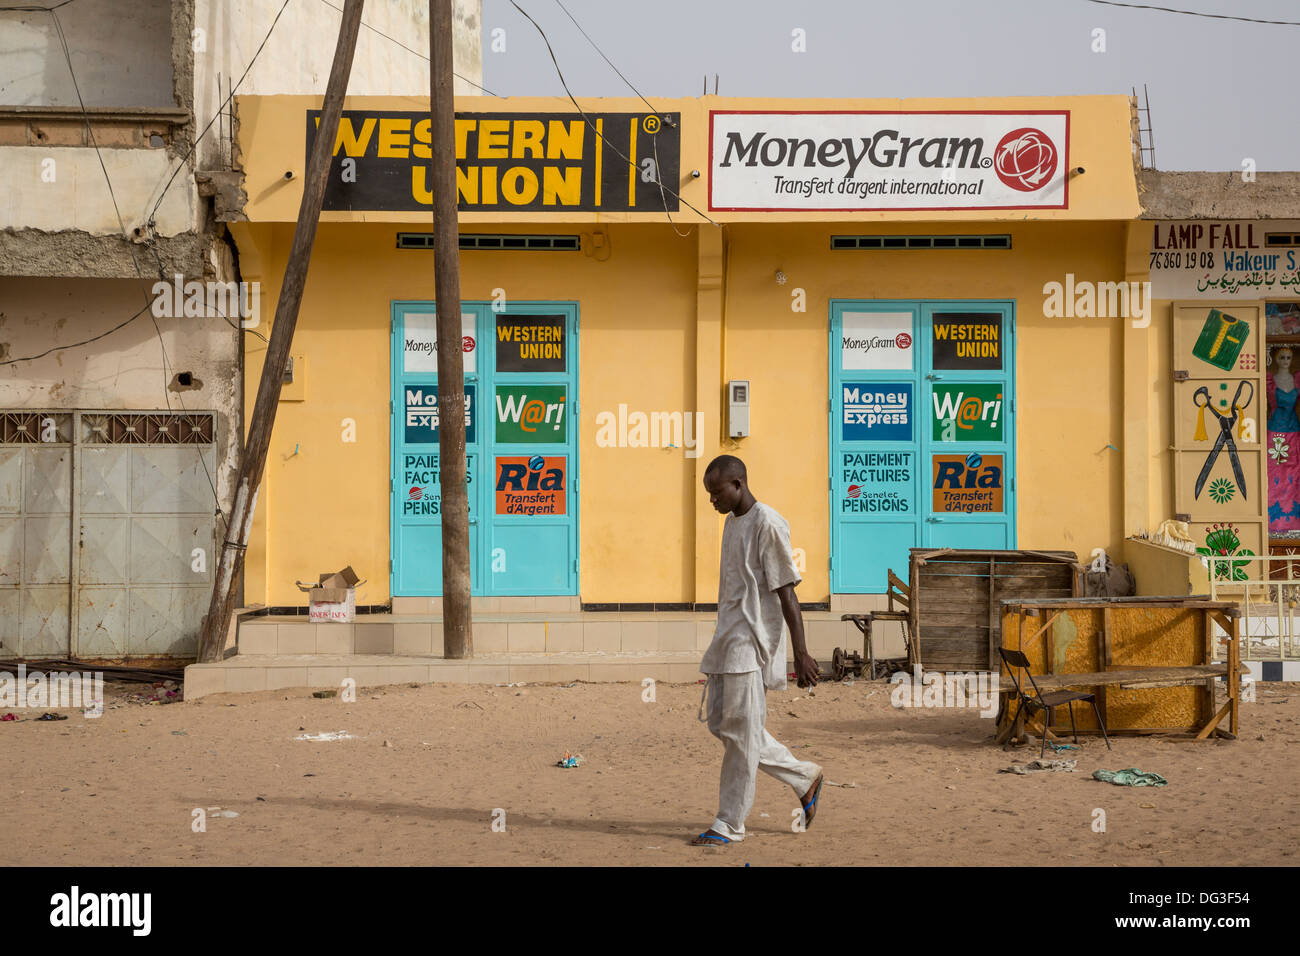 Image result for western union in africa